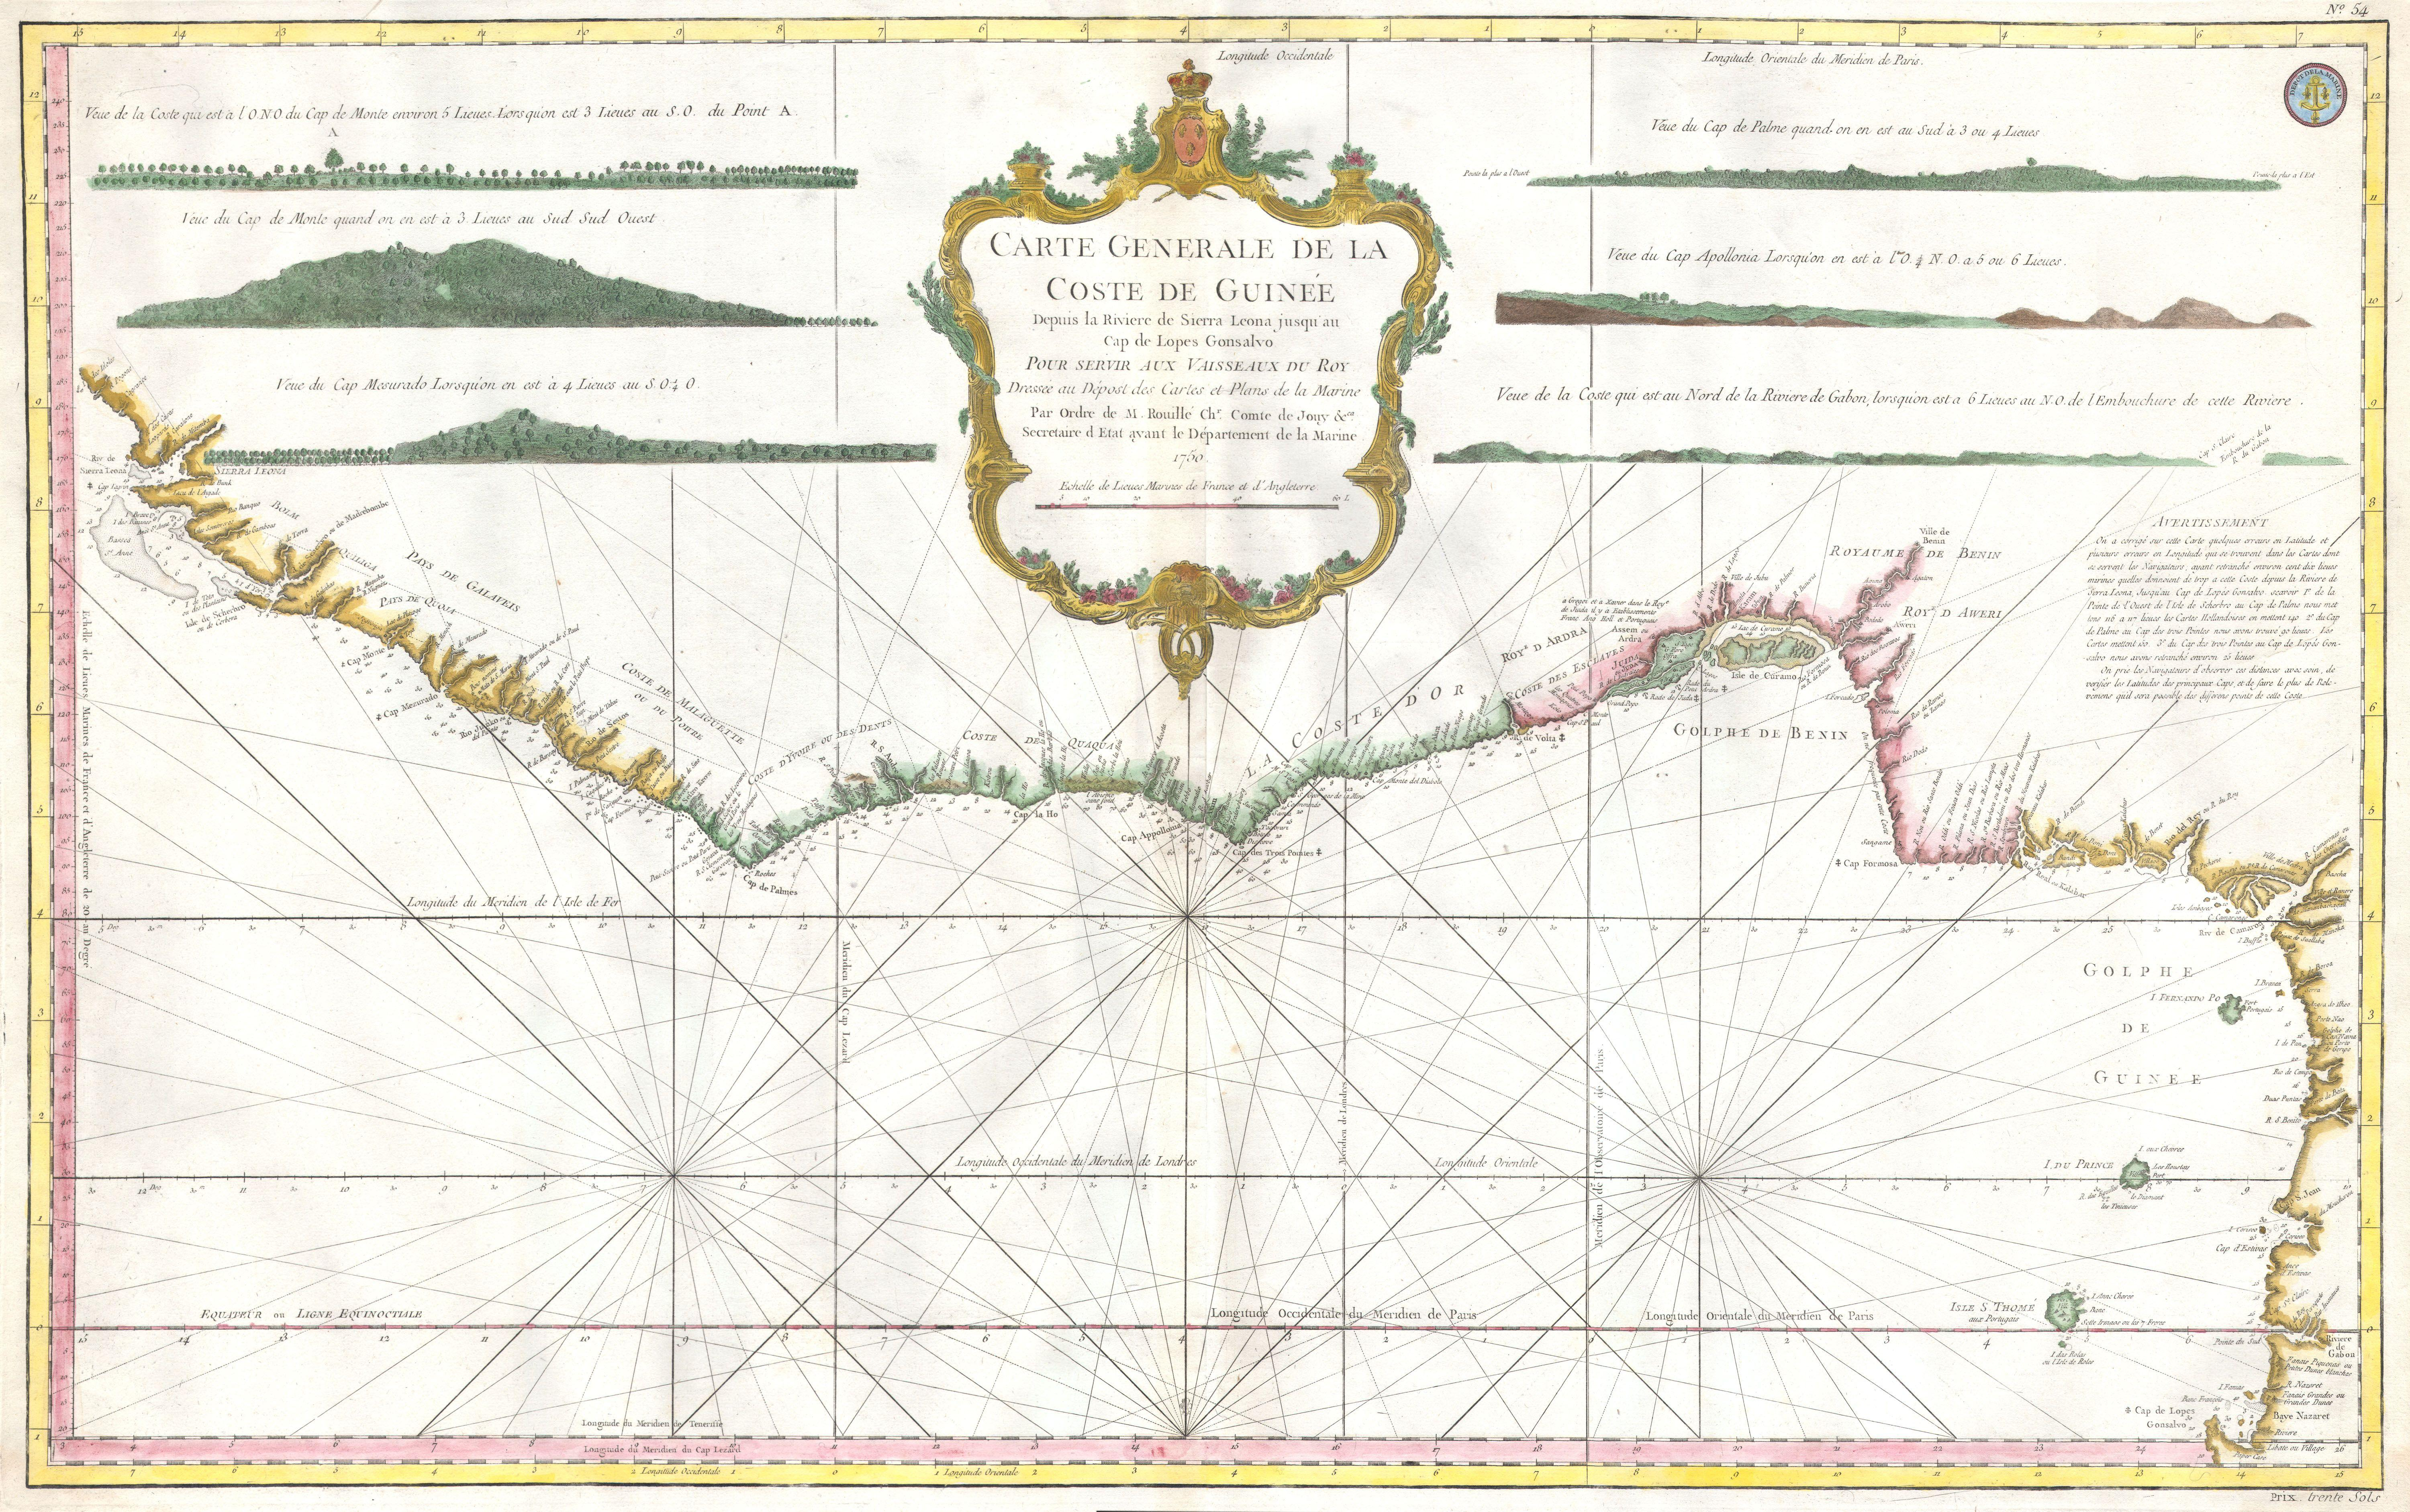 West Africa Benin Map.File 1765 Bonne Map Of West Africa The Gulf Of Guinea And